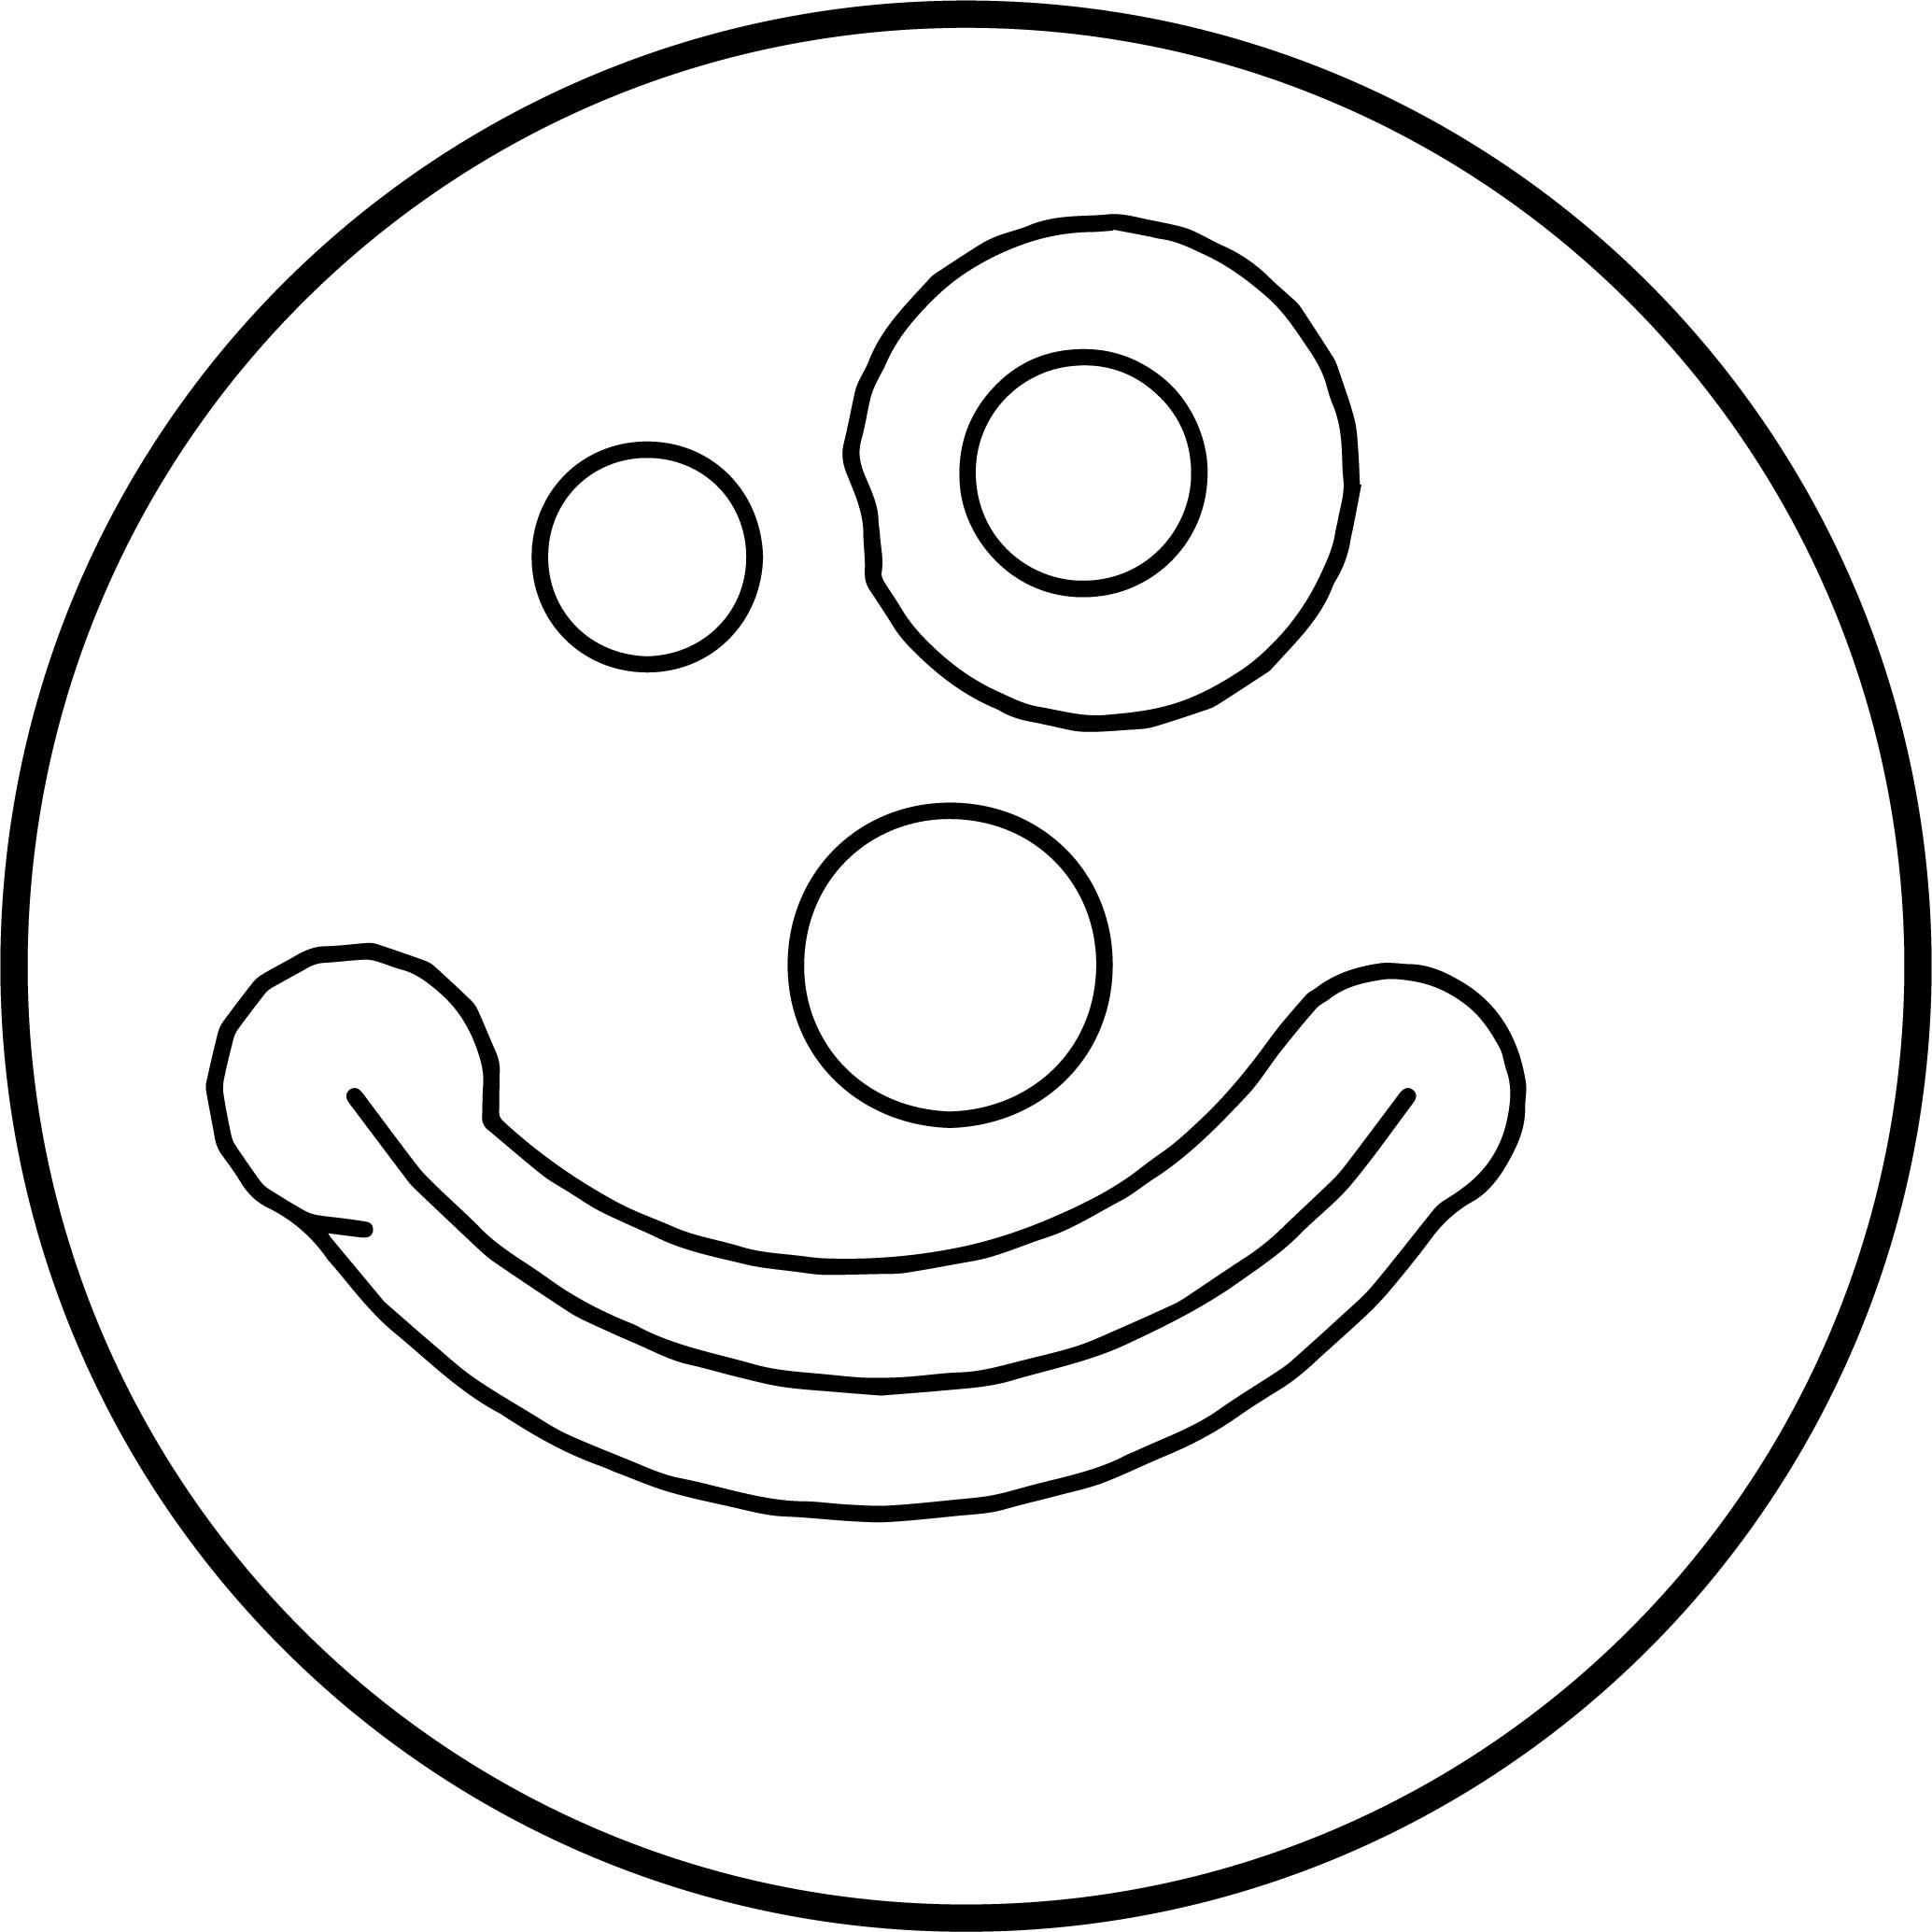 clown mouth coloring pages - photo#19